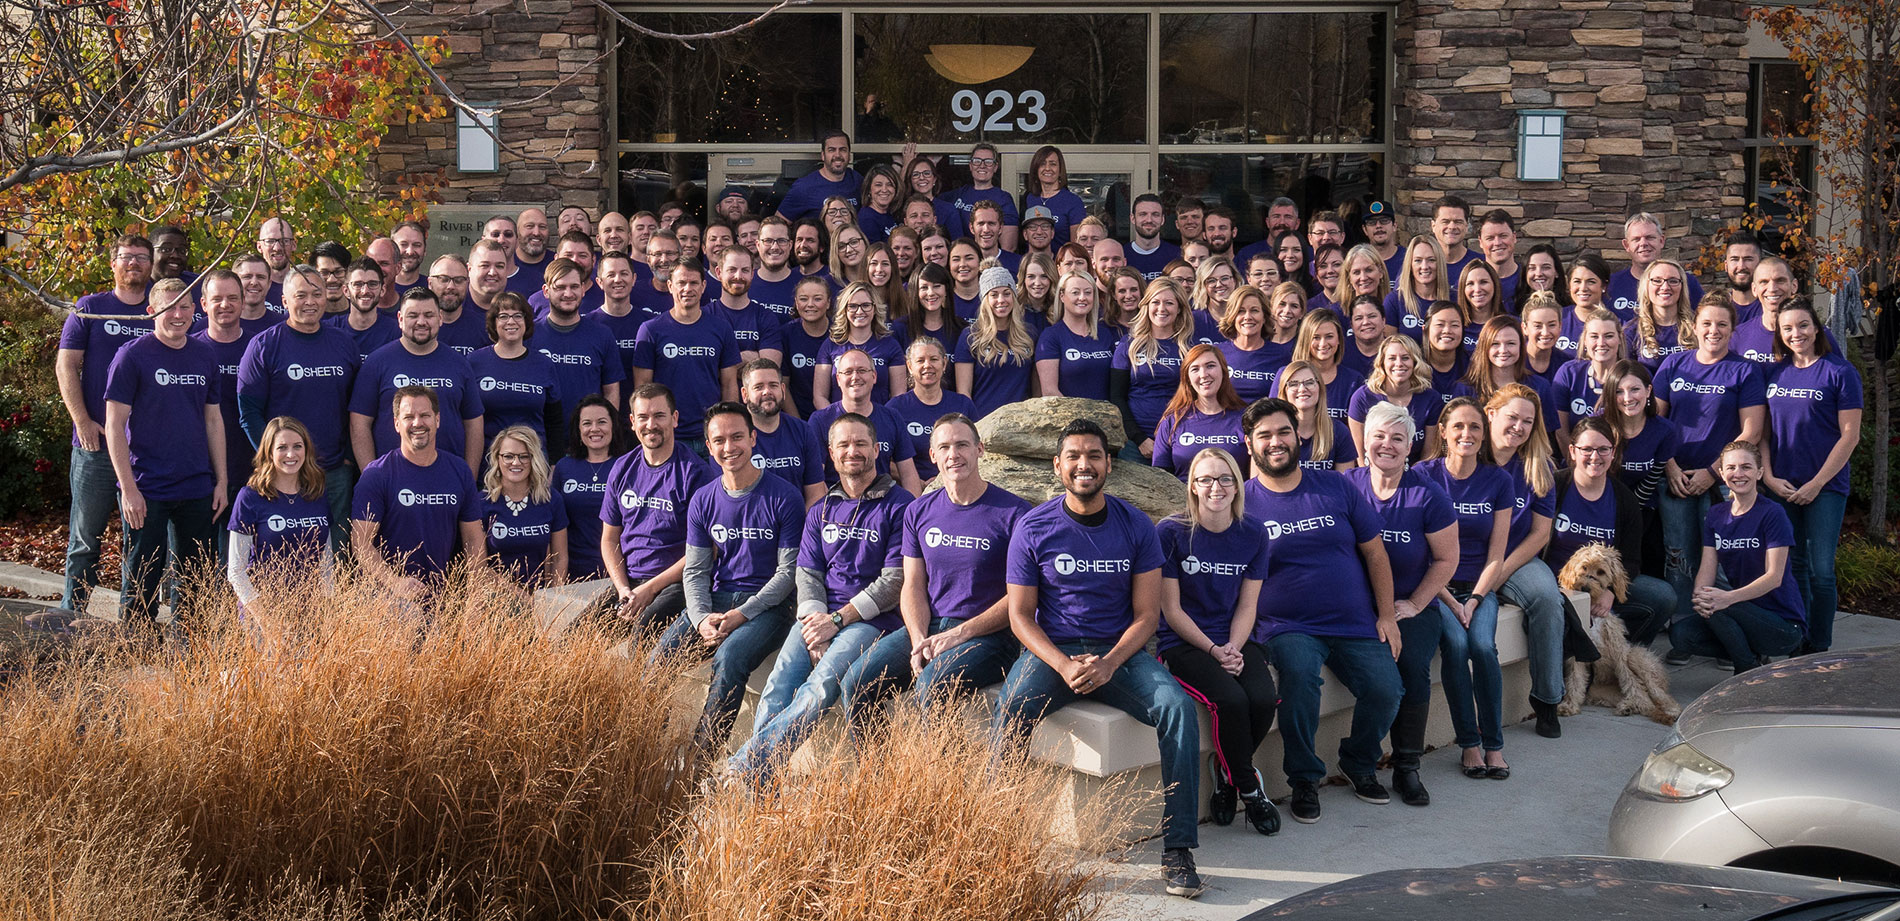 These are the people who will fulfill the TSheets' mission to become the No. 1 employee rated and requested time tracking and scheduling software on the planet.